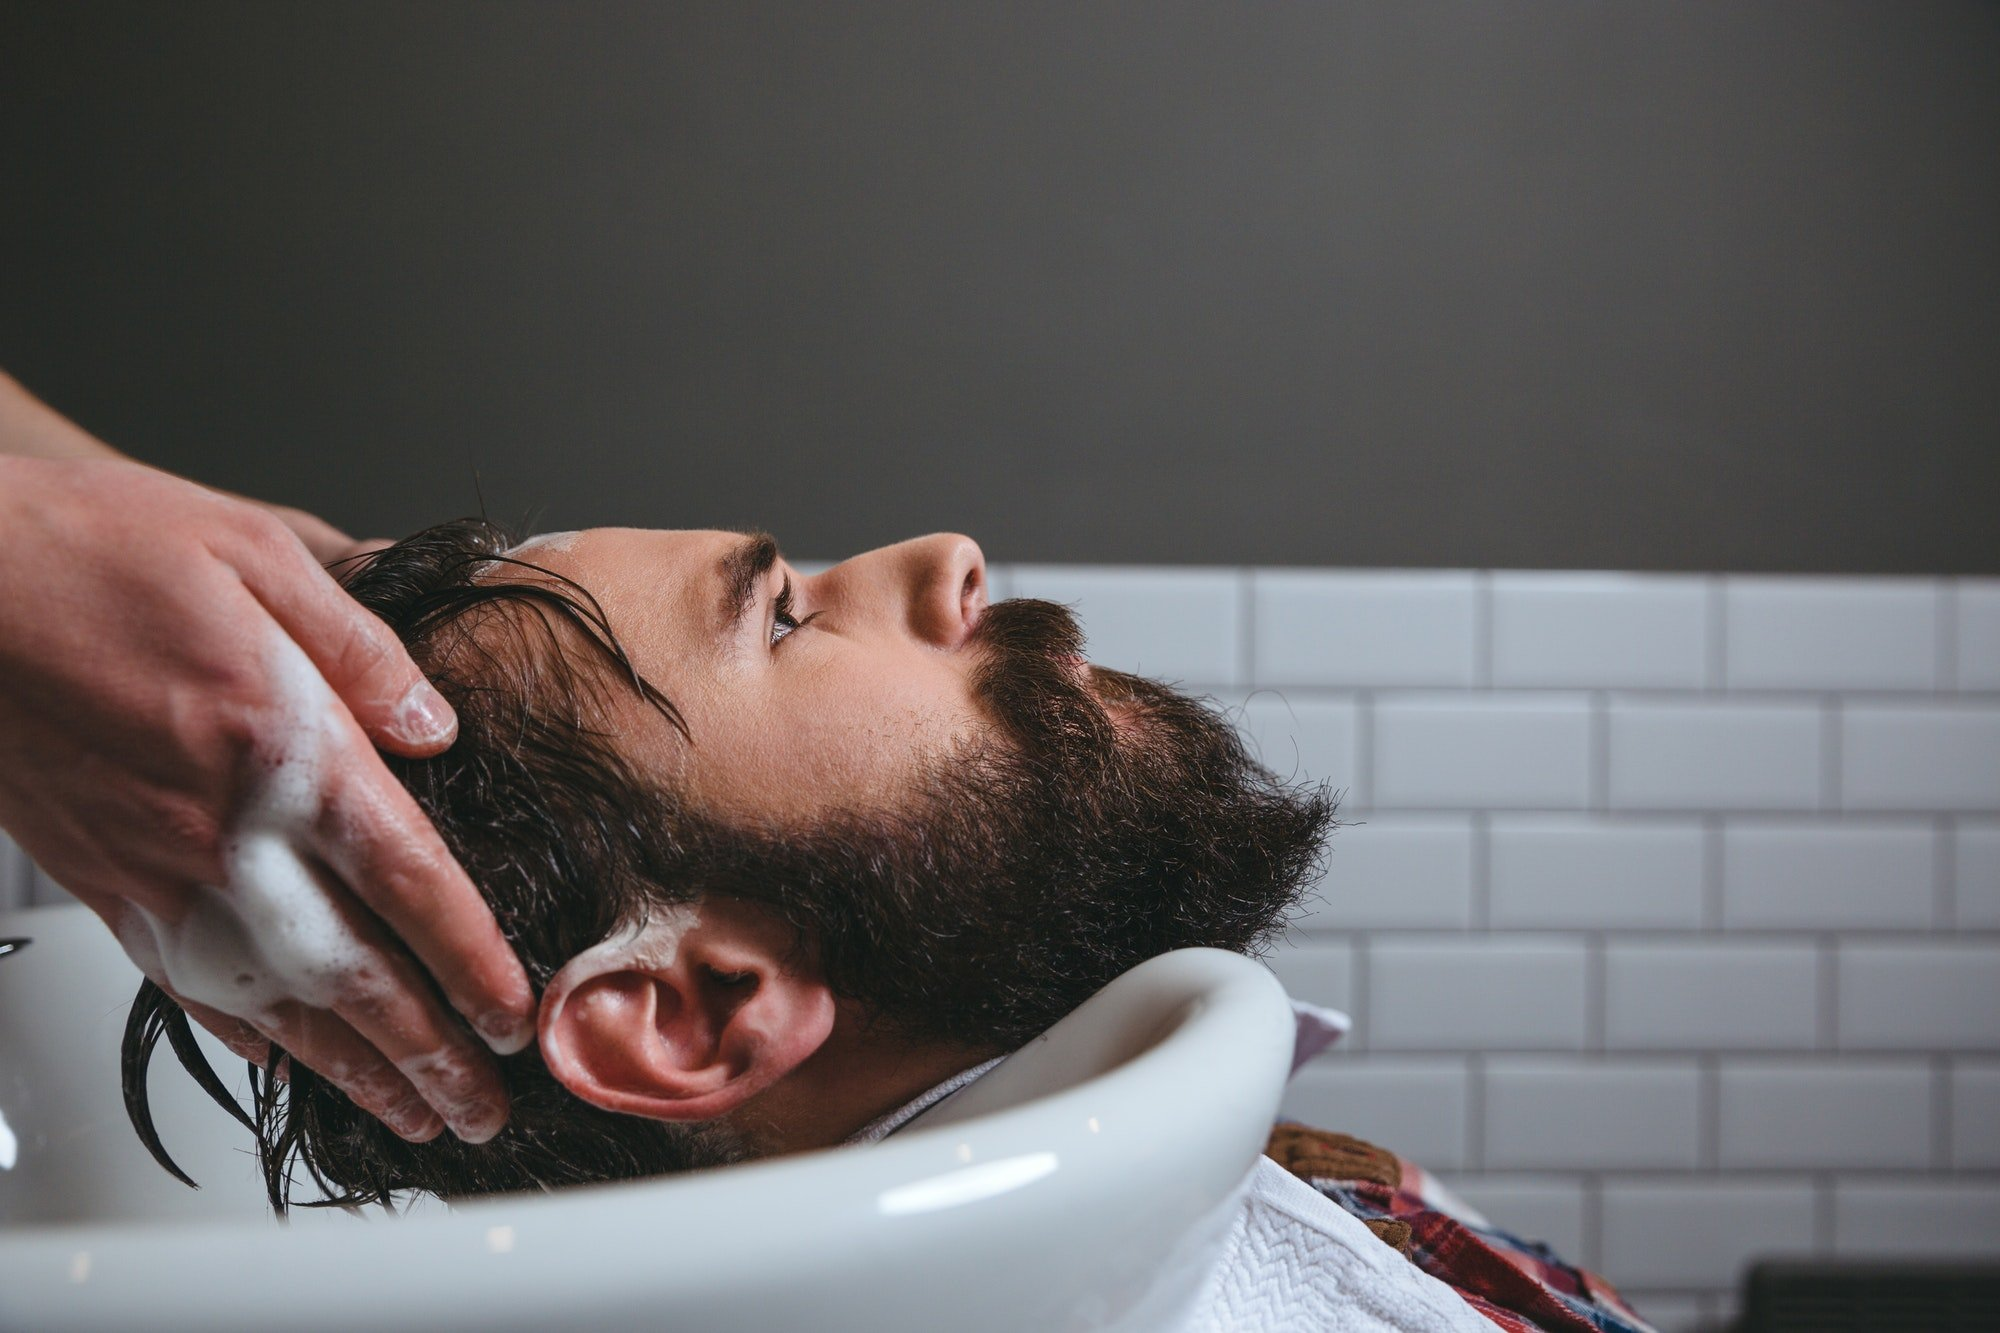 Barber washing client's hair